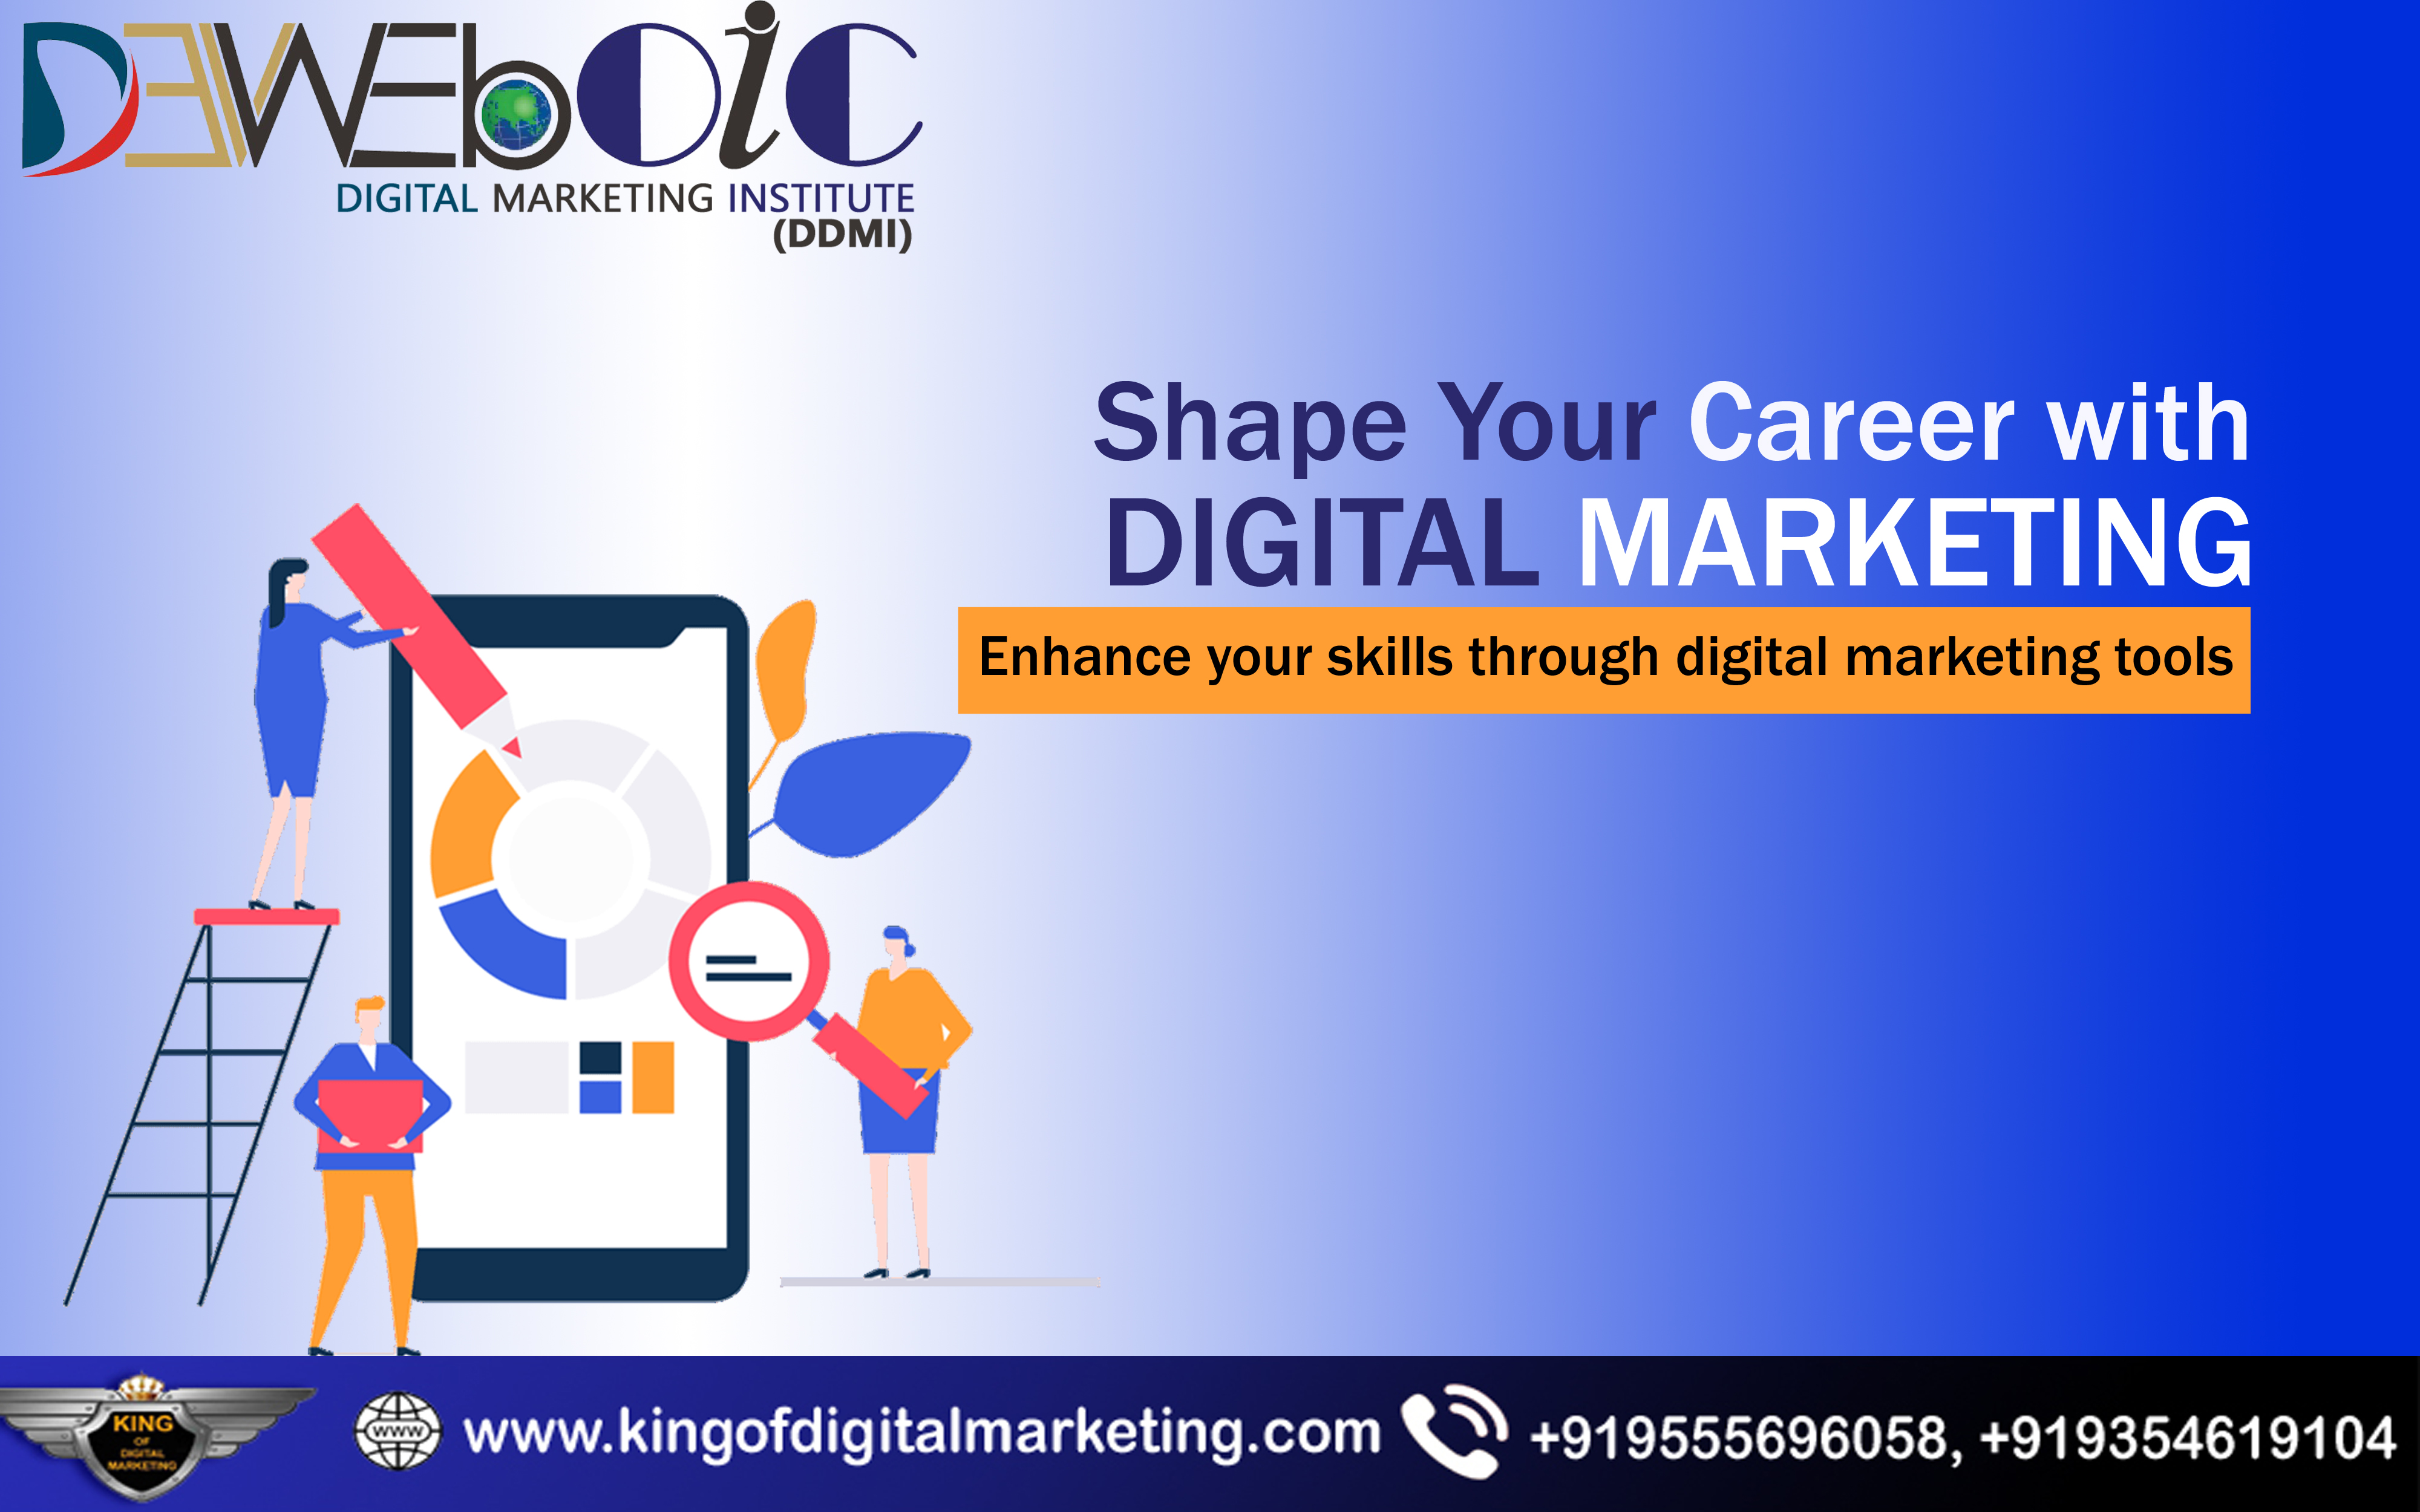 Shape Your Career With Digital Marketing Course in Delhi